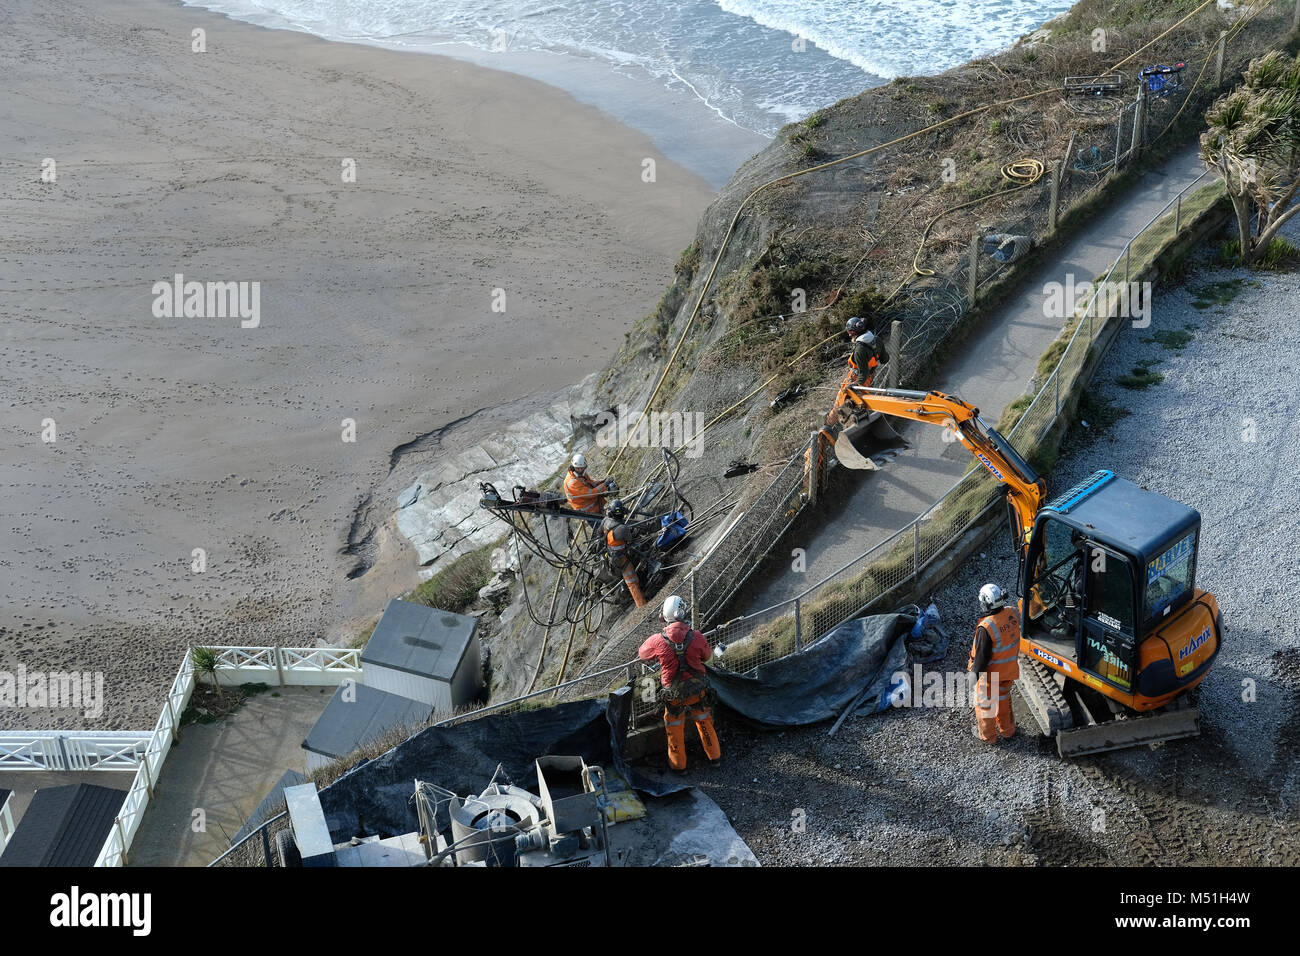 Men working on cliff repairs in Newquay, Cornwall. - Stock Image